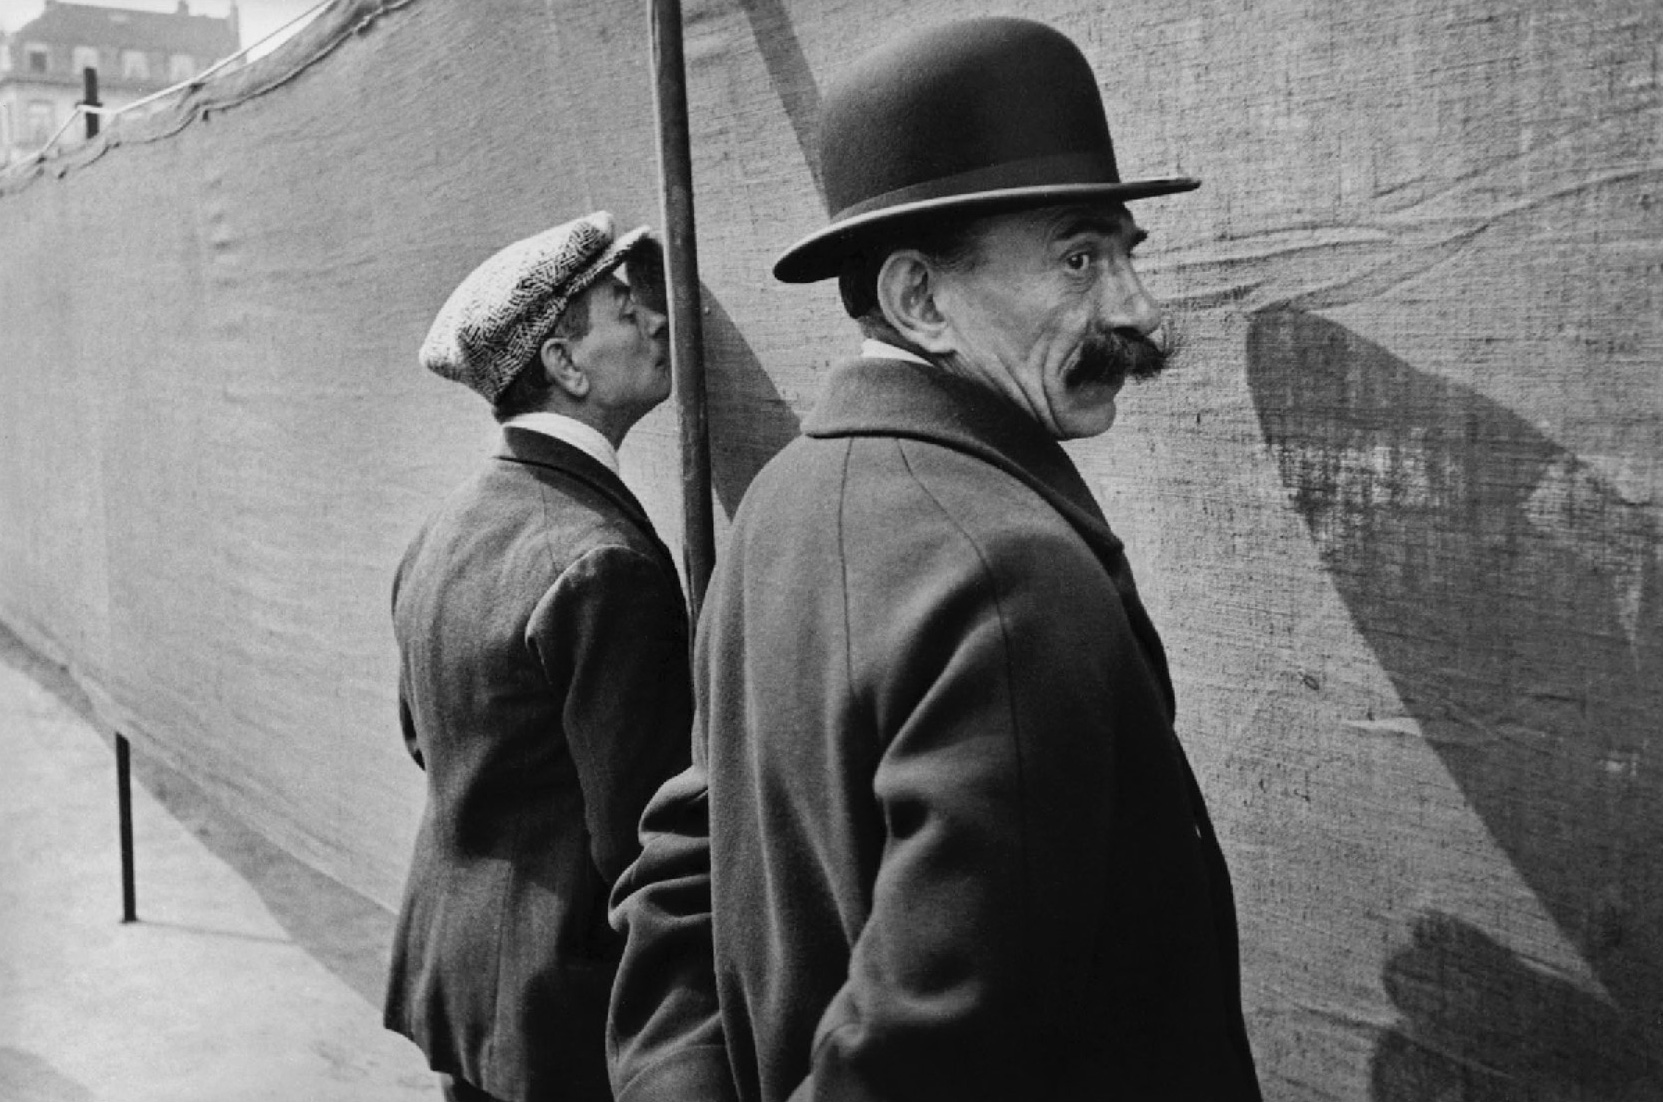 henri cartier bresson arts An innovative artist, trailblazing photojournalist, and quintessential world traveler,  henri cartier-bresson ranks among the most accomplished.